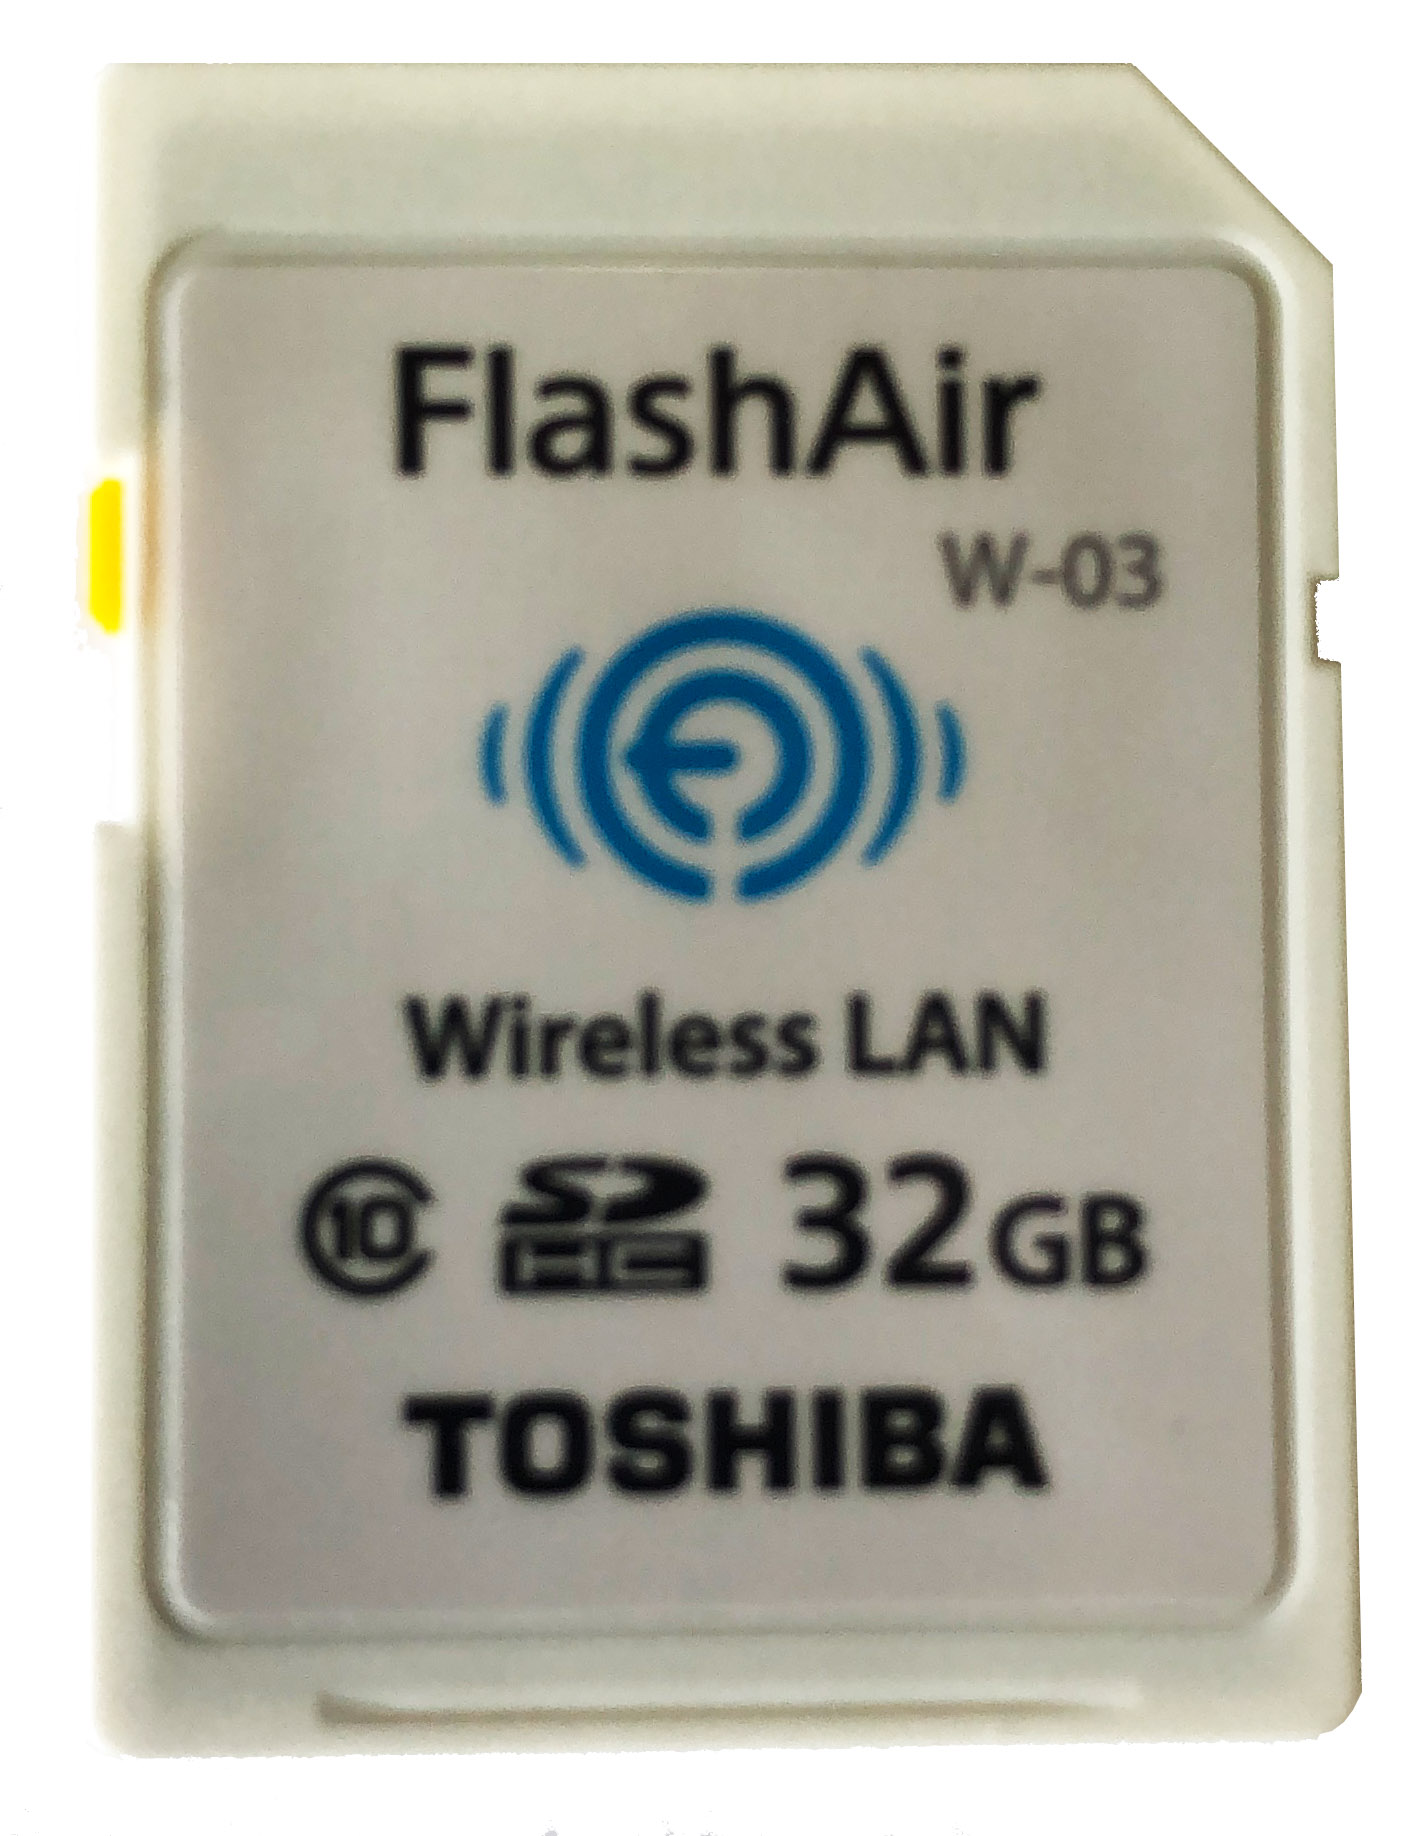 TOSHIBA FlashAir 32GB WiFi SD card